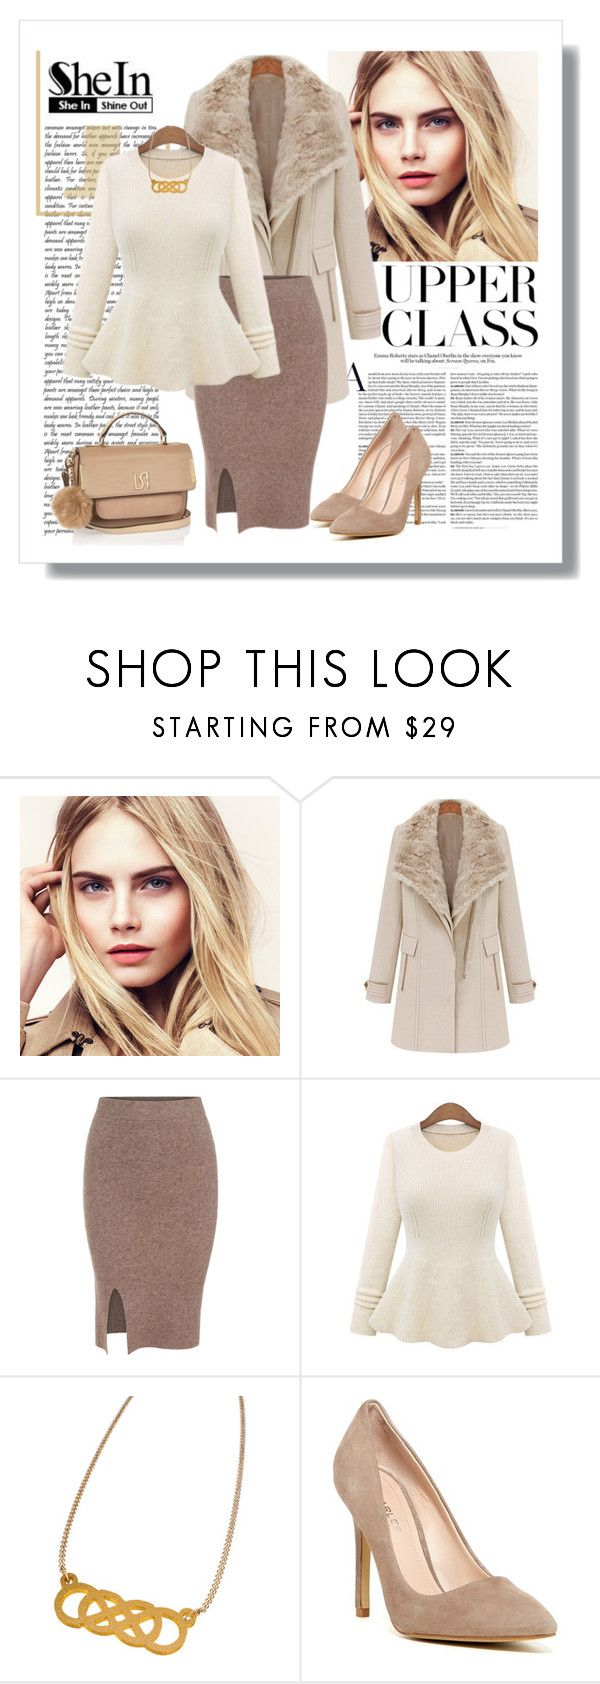 """""""Shein Beige Round Neck Knit Sweater - Contest with a Prize!"""" by elena-indolfi ❤ liked on Polyvore featuring Burberry, Charles by Charles David and River Island"""